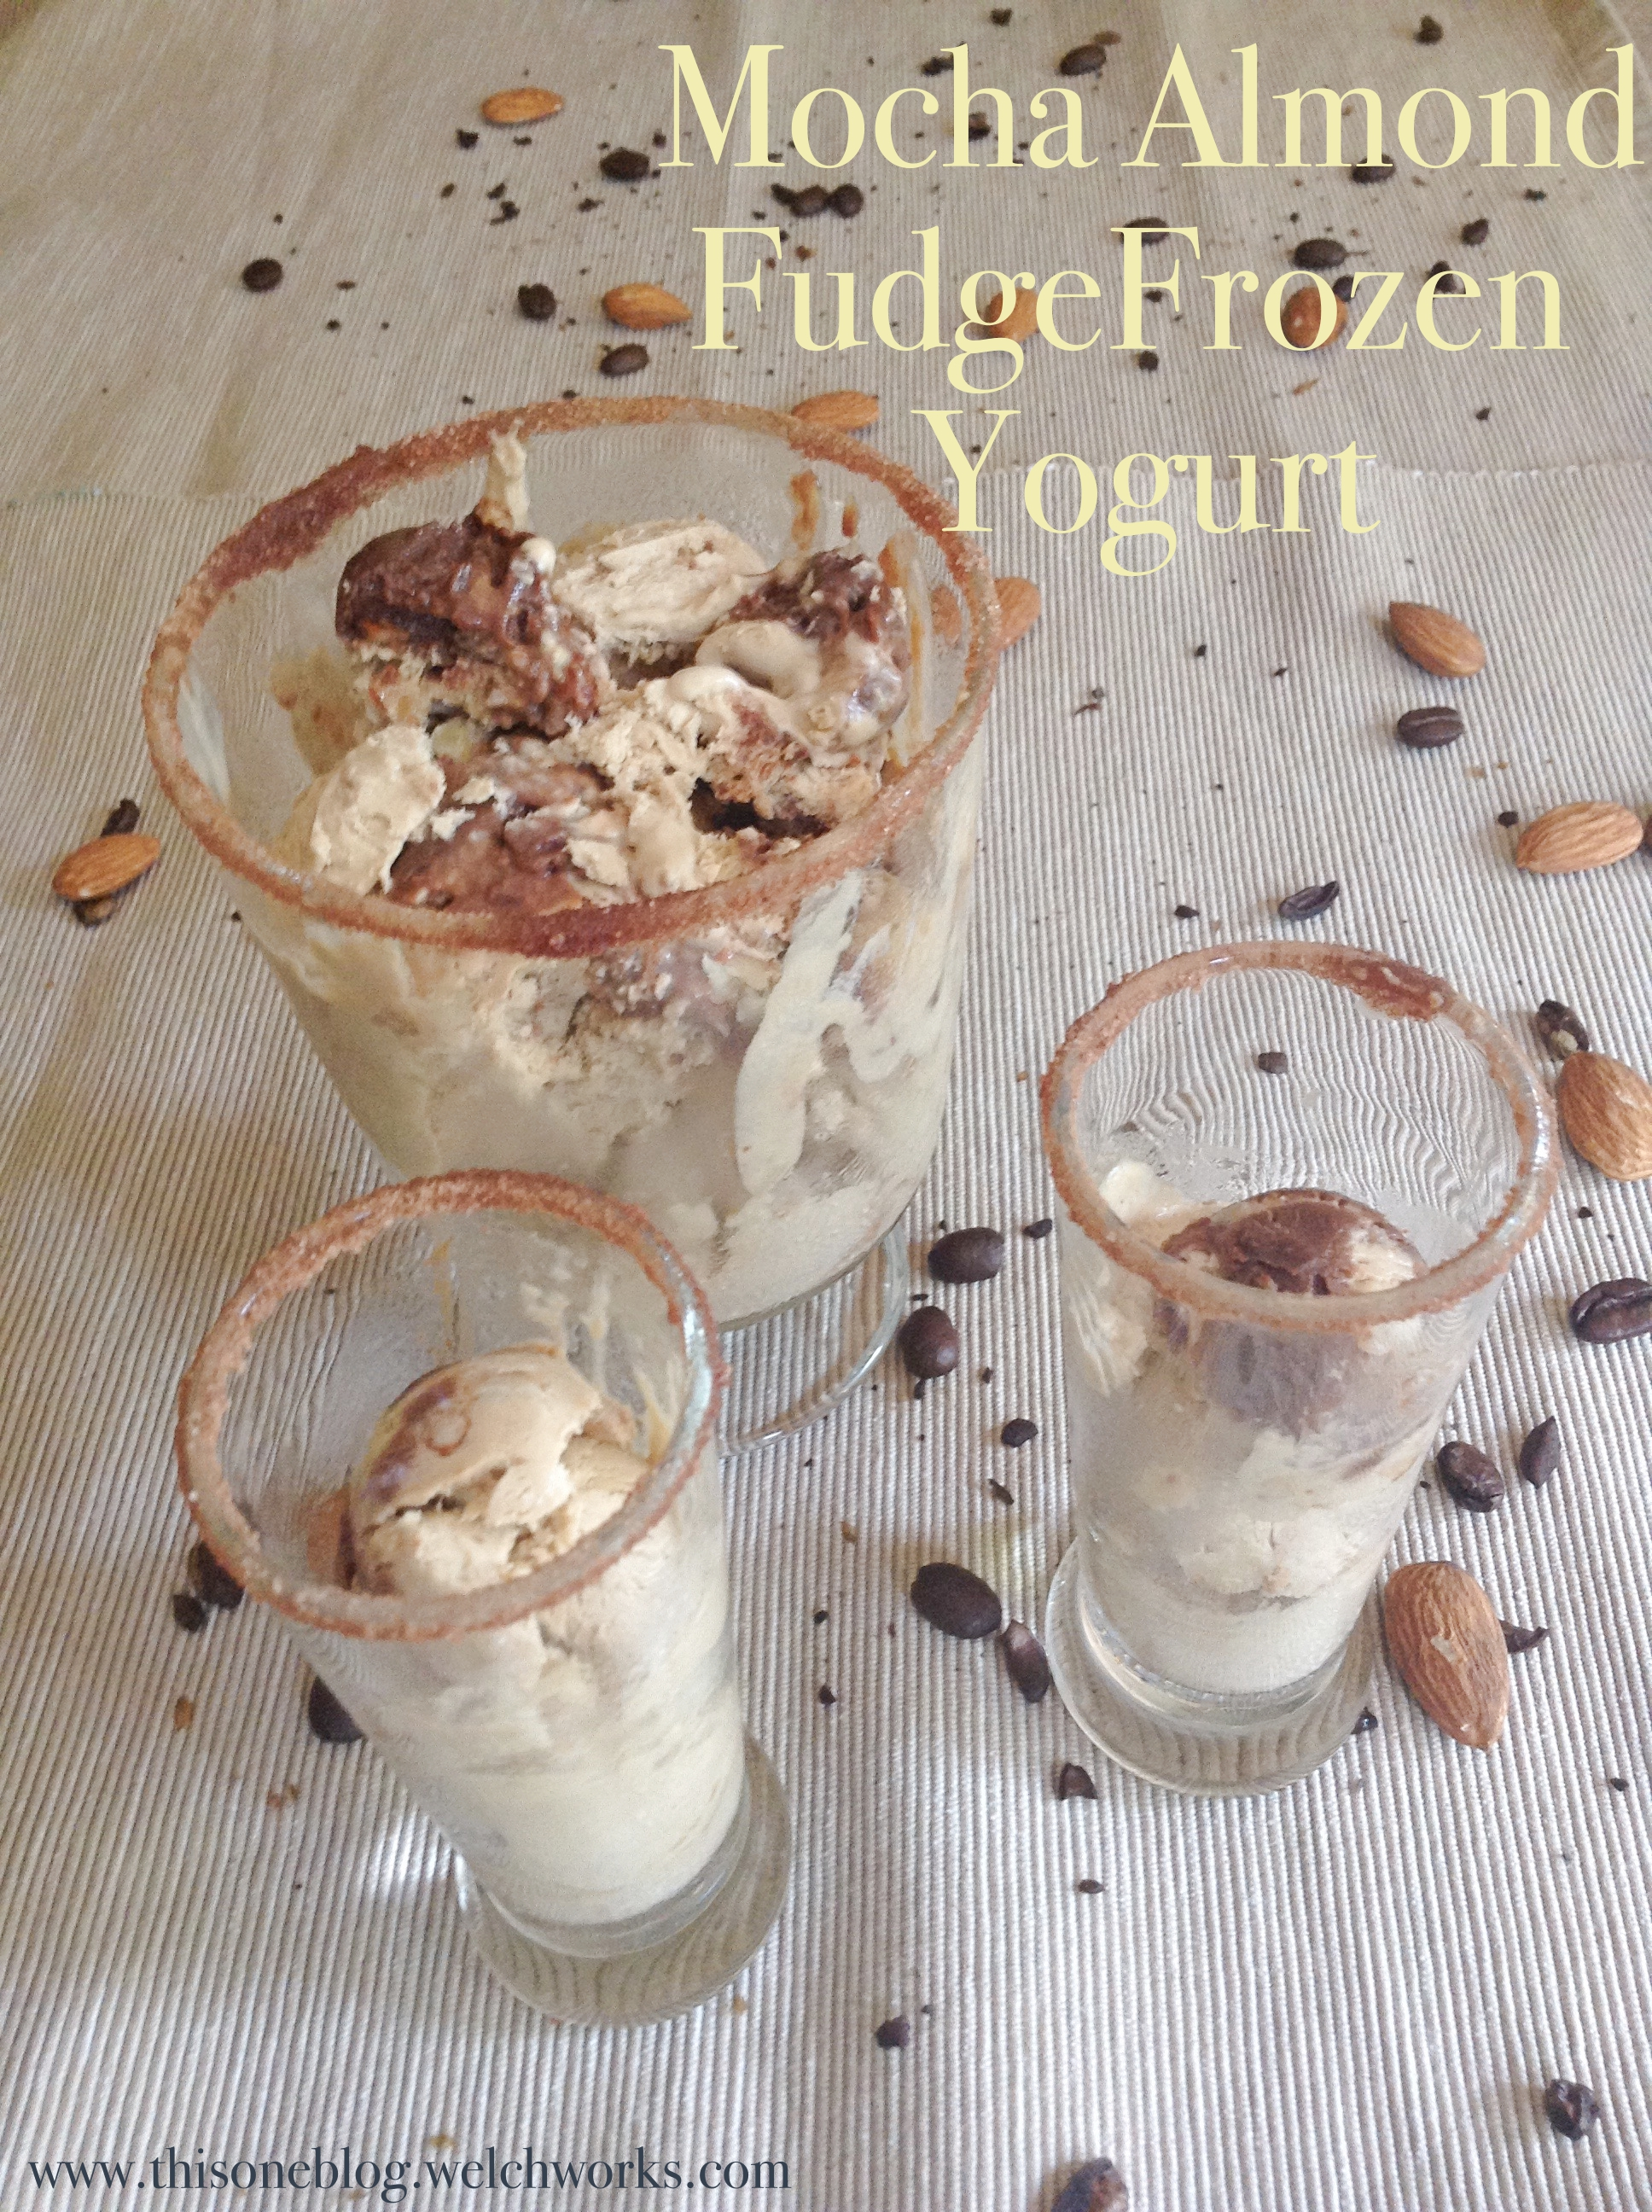 mocha almond fudge frozen yogurt #2